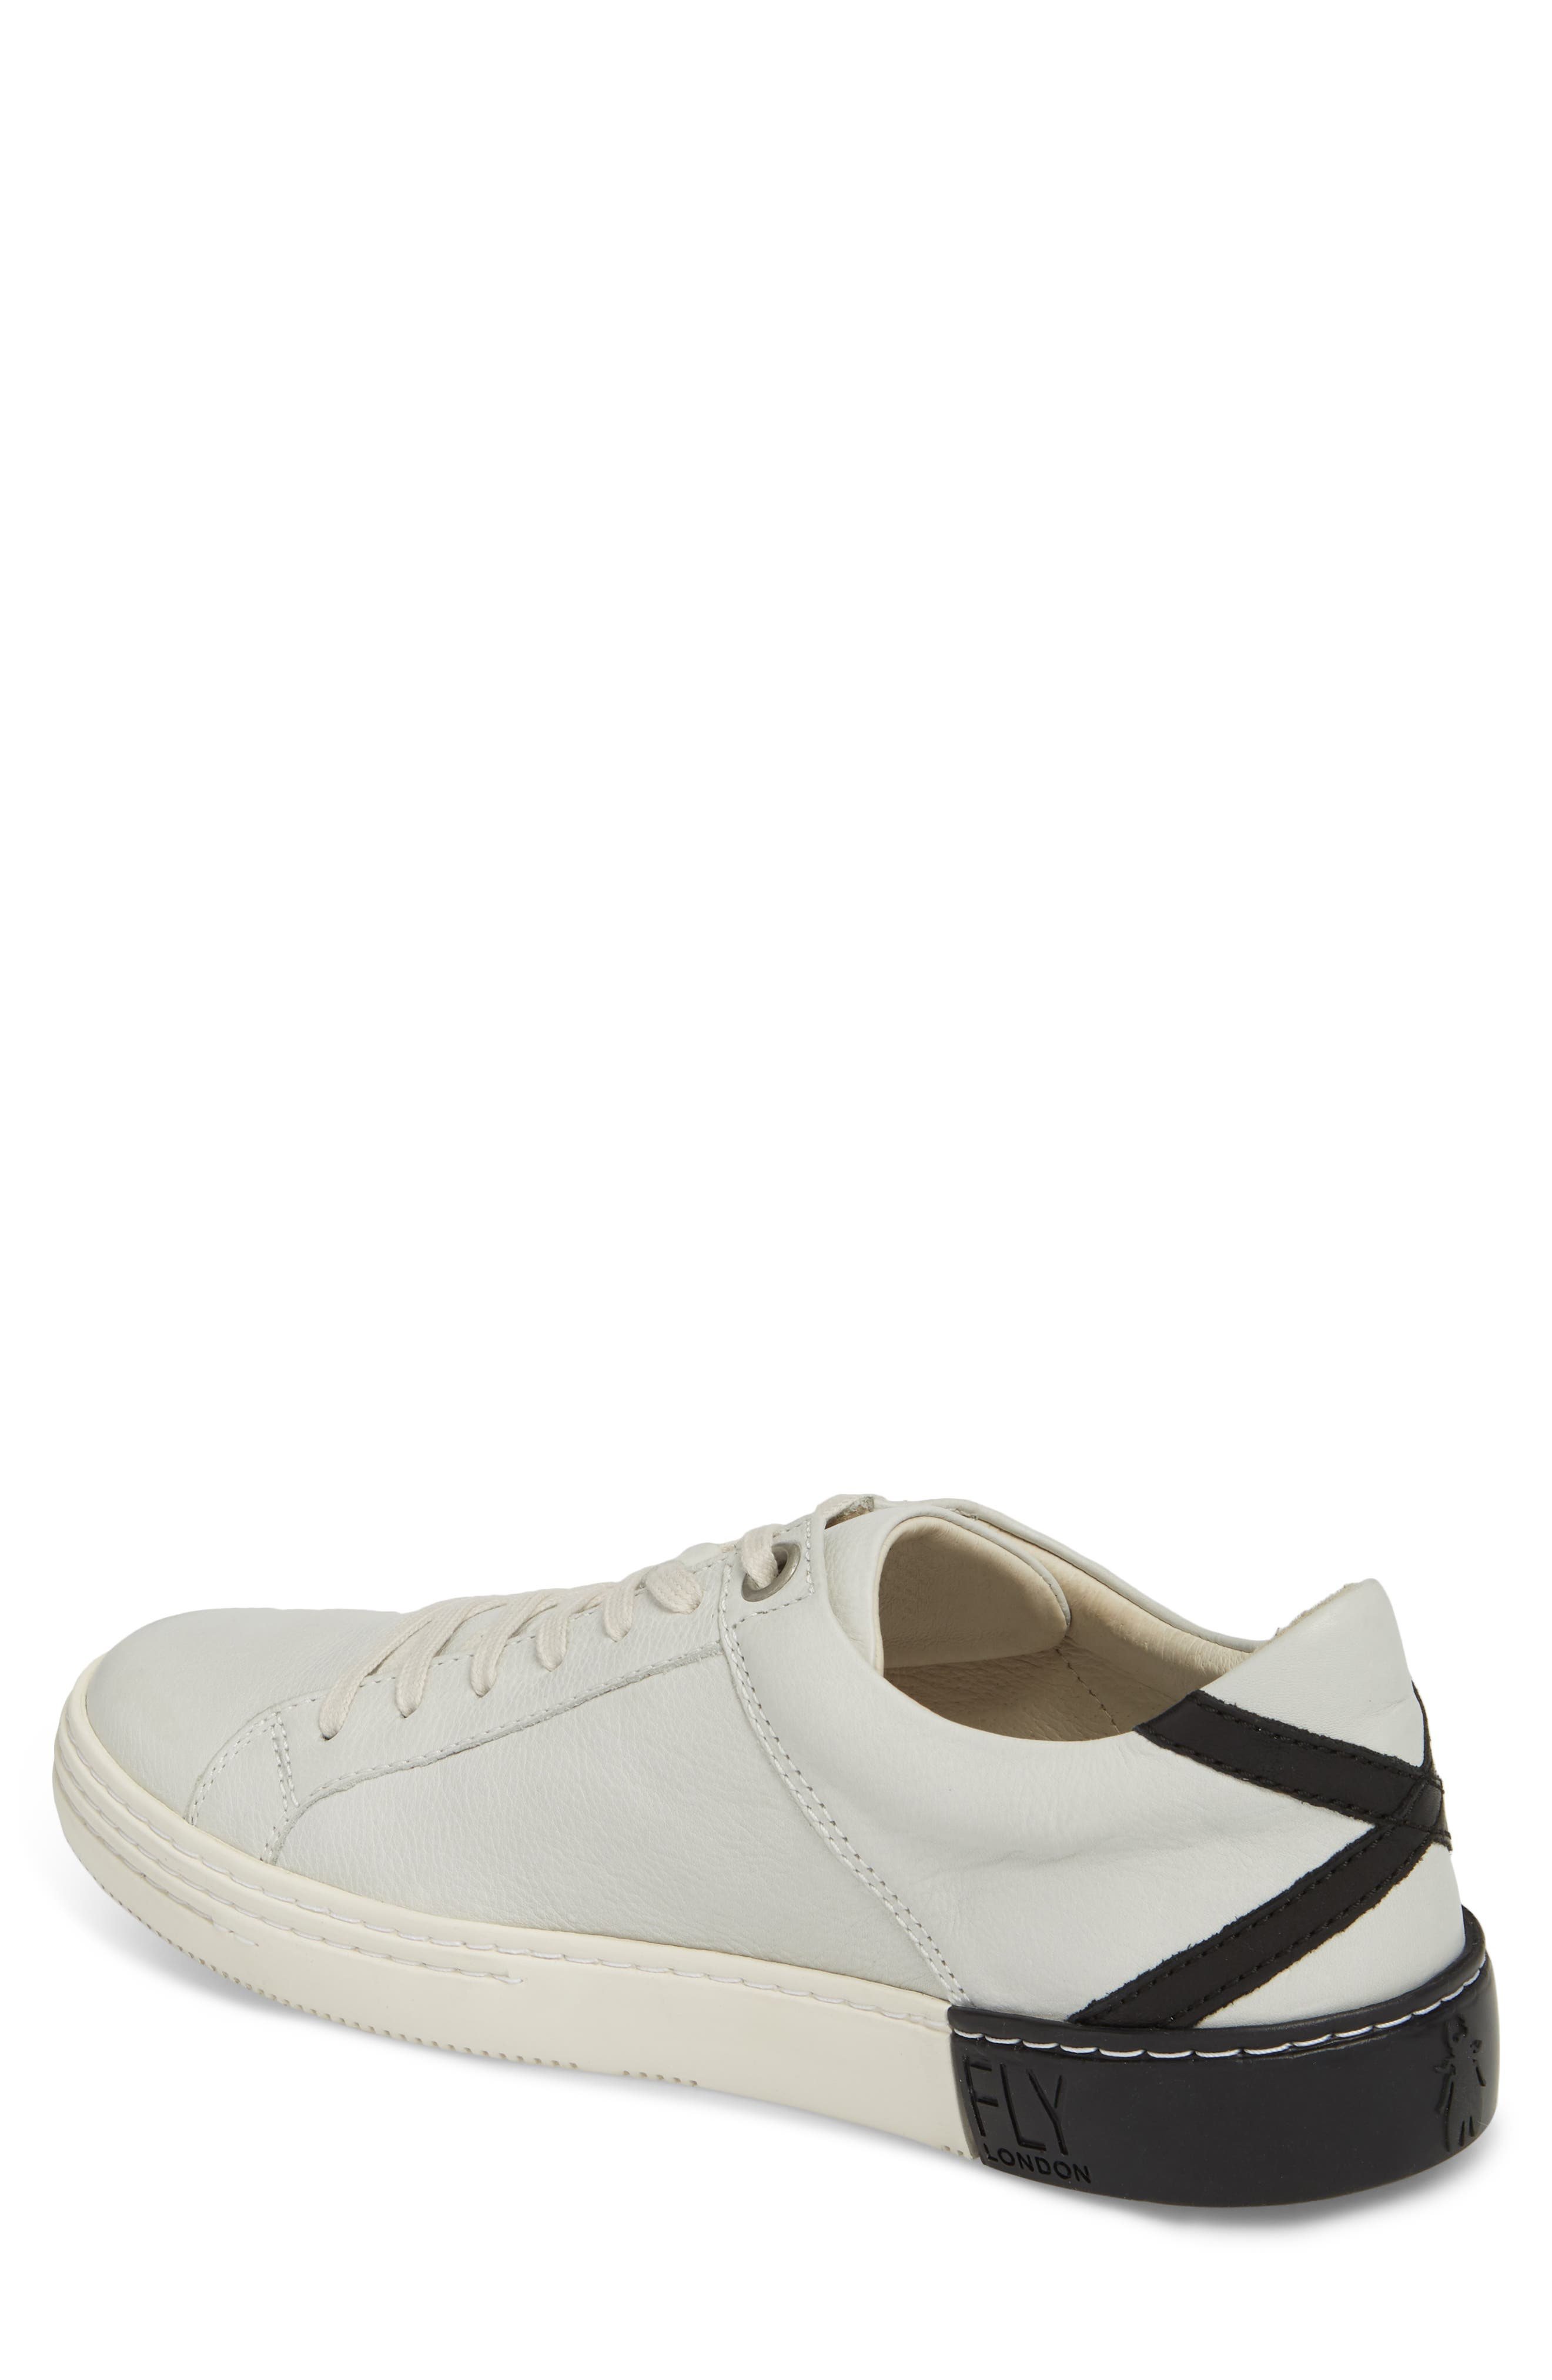 Sene Low Top Sneaker,                             Alternate thumbnail 2, color,                             Off White Leather